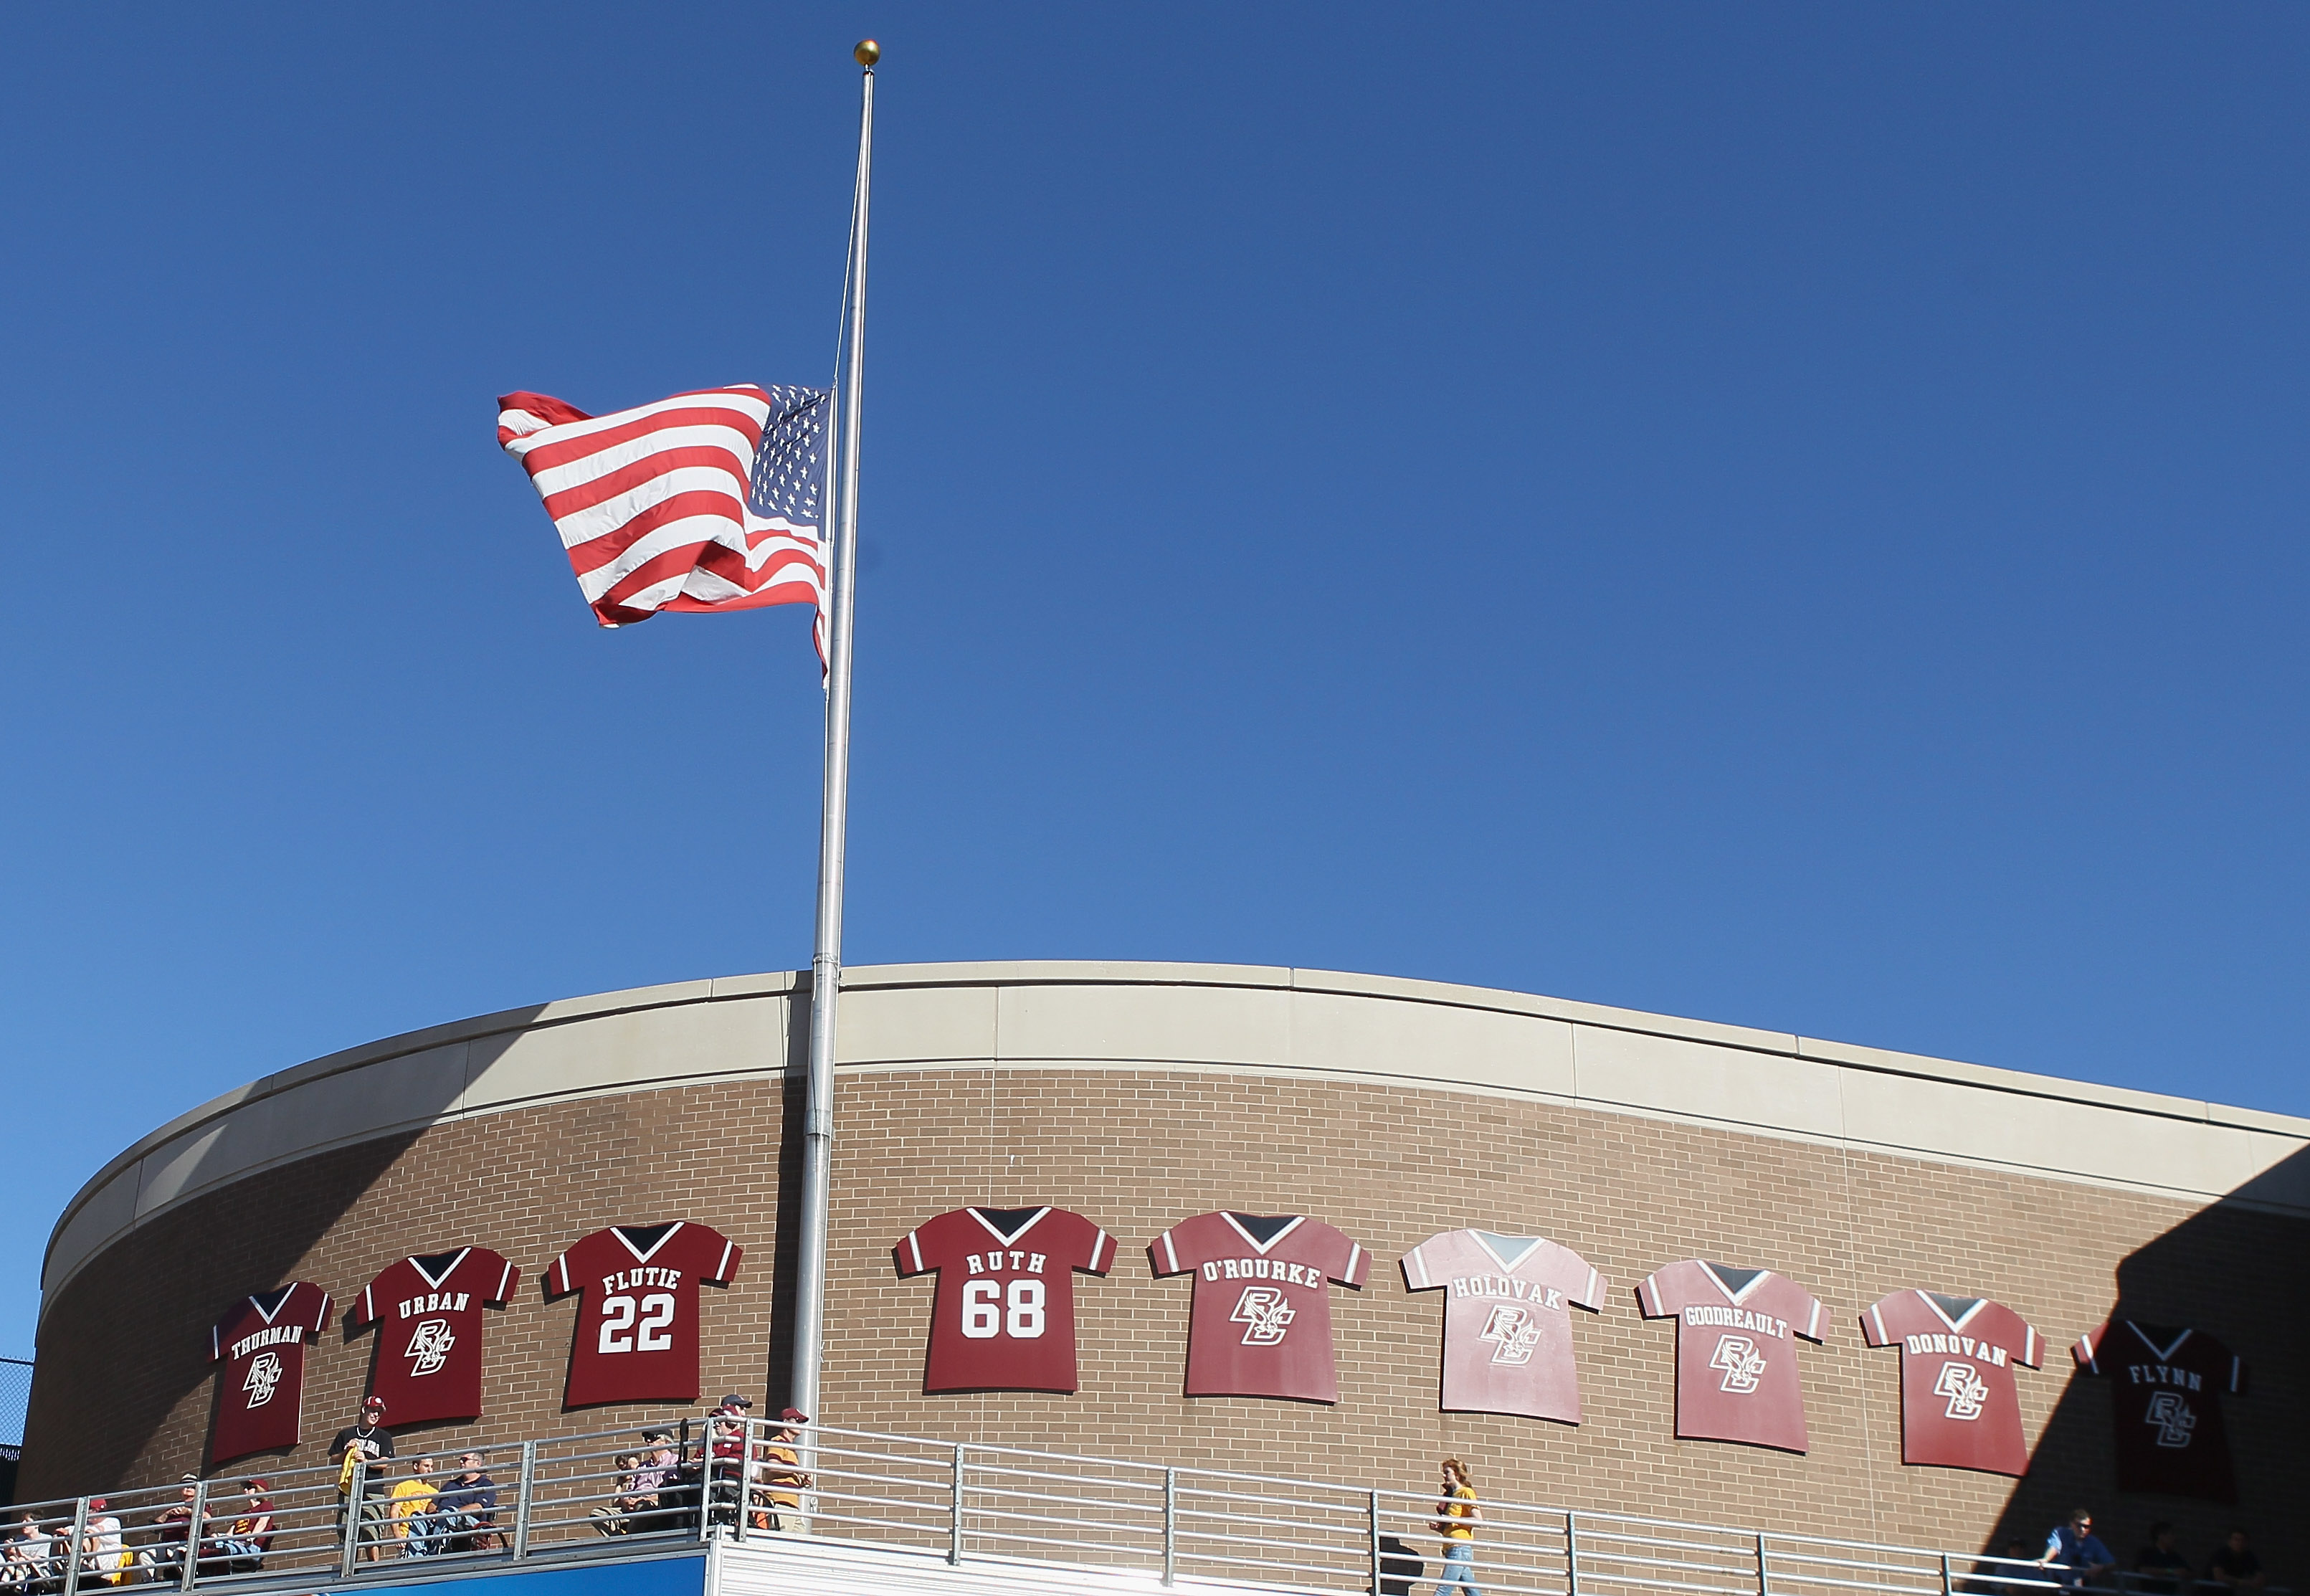 CHESTNUT HILL, MA - SEPTEMBER 11:  The flag is raised to  half staff in honor of the 9/11 attacks during the game between the Boston College Eagles and the Kent State Golden Flashes on September 11, 2010 at Alumni Stadium in Chestnut Hill, Massachusetts.